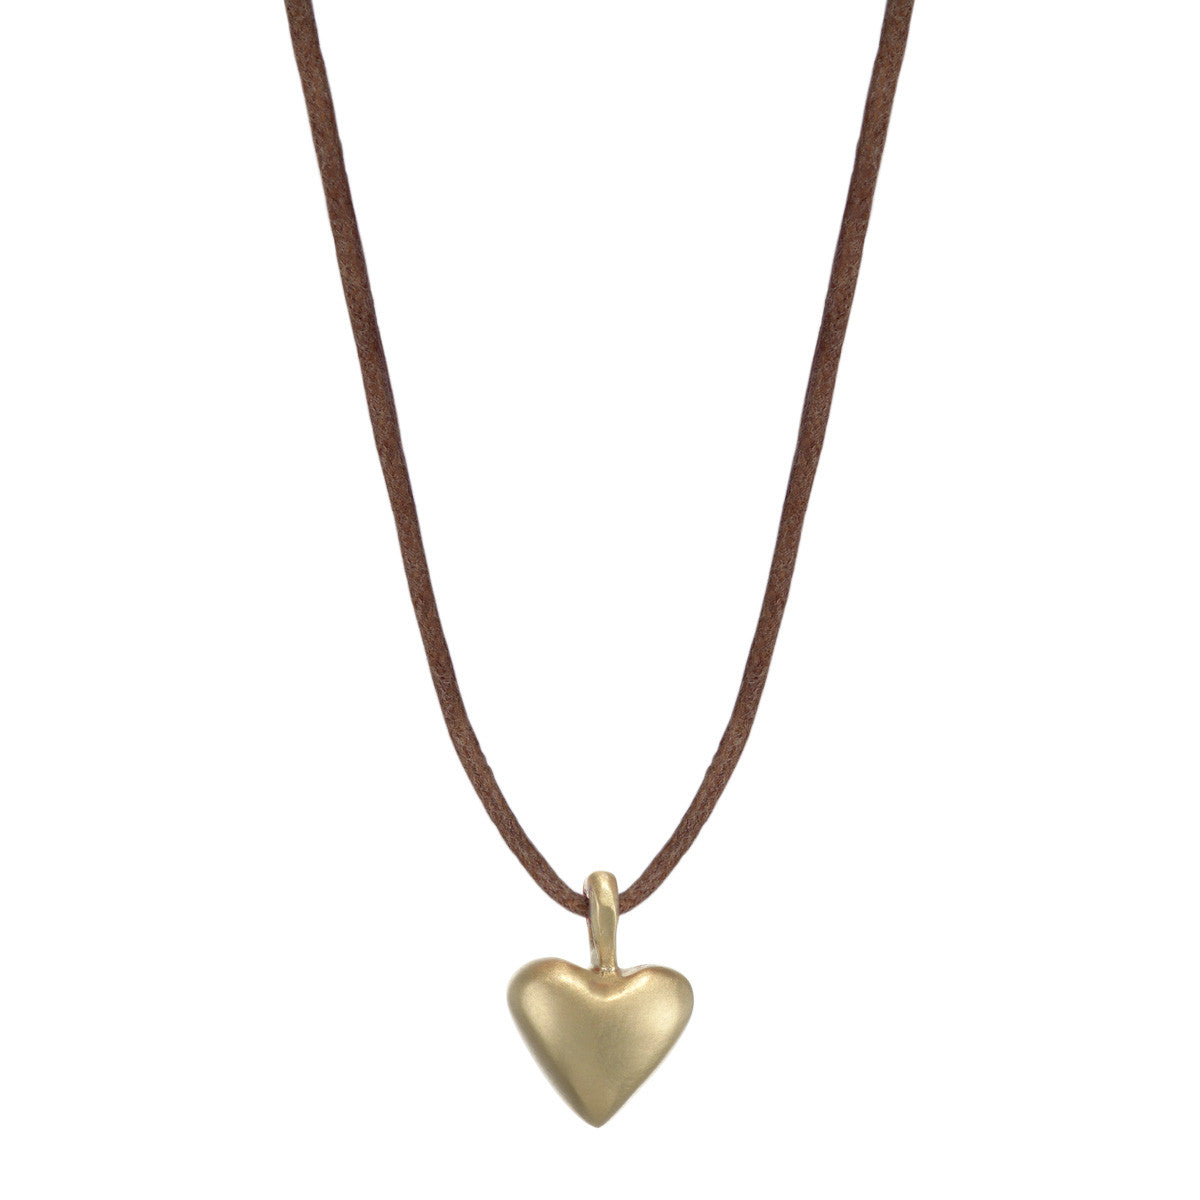 10K Gold Medium Heart on Natural Cord